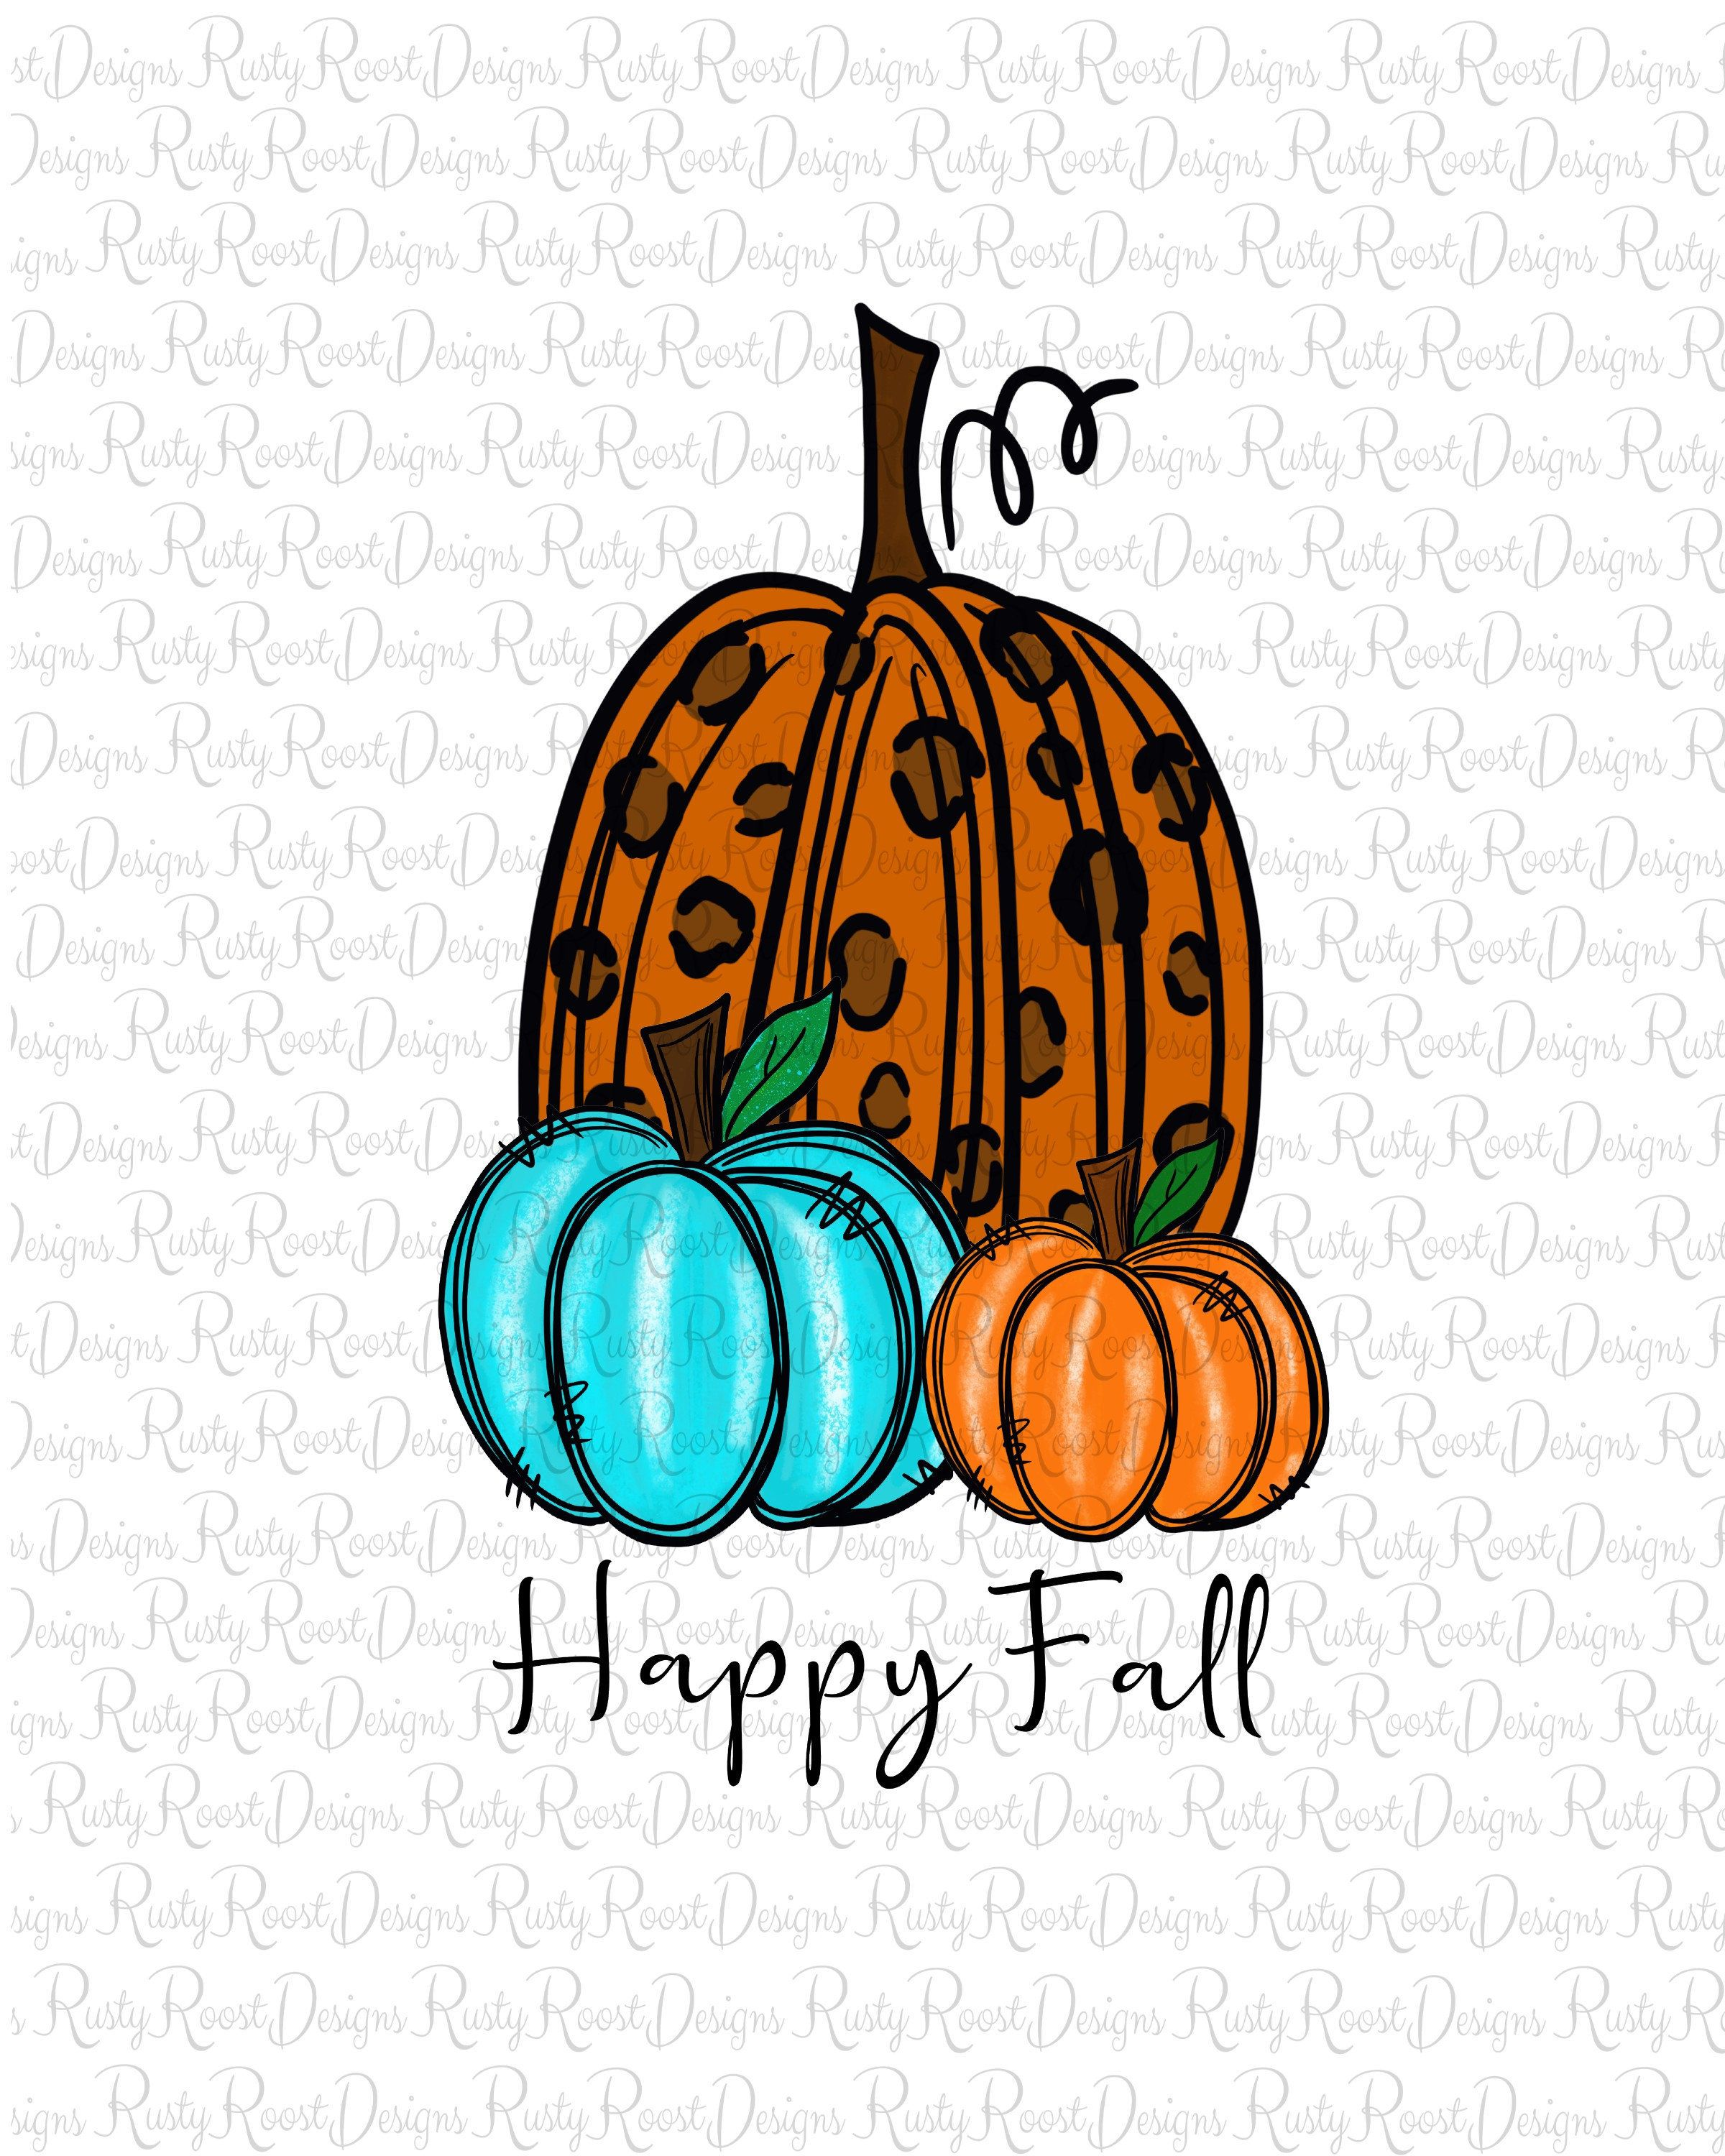 Happy Fall Pngfall Sublimation Designs Downloadssublimation Etsy How To Draw Hands Happy Fall Screen Printing